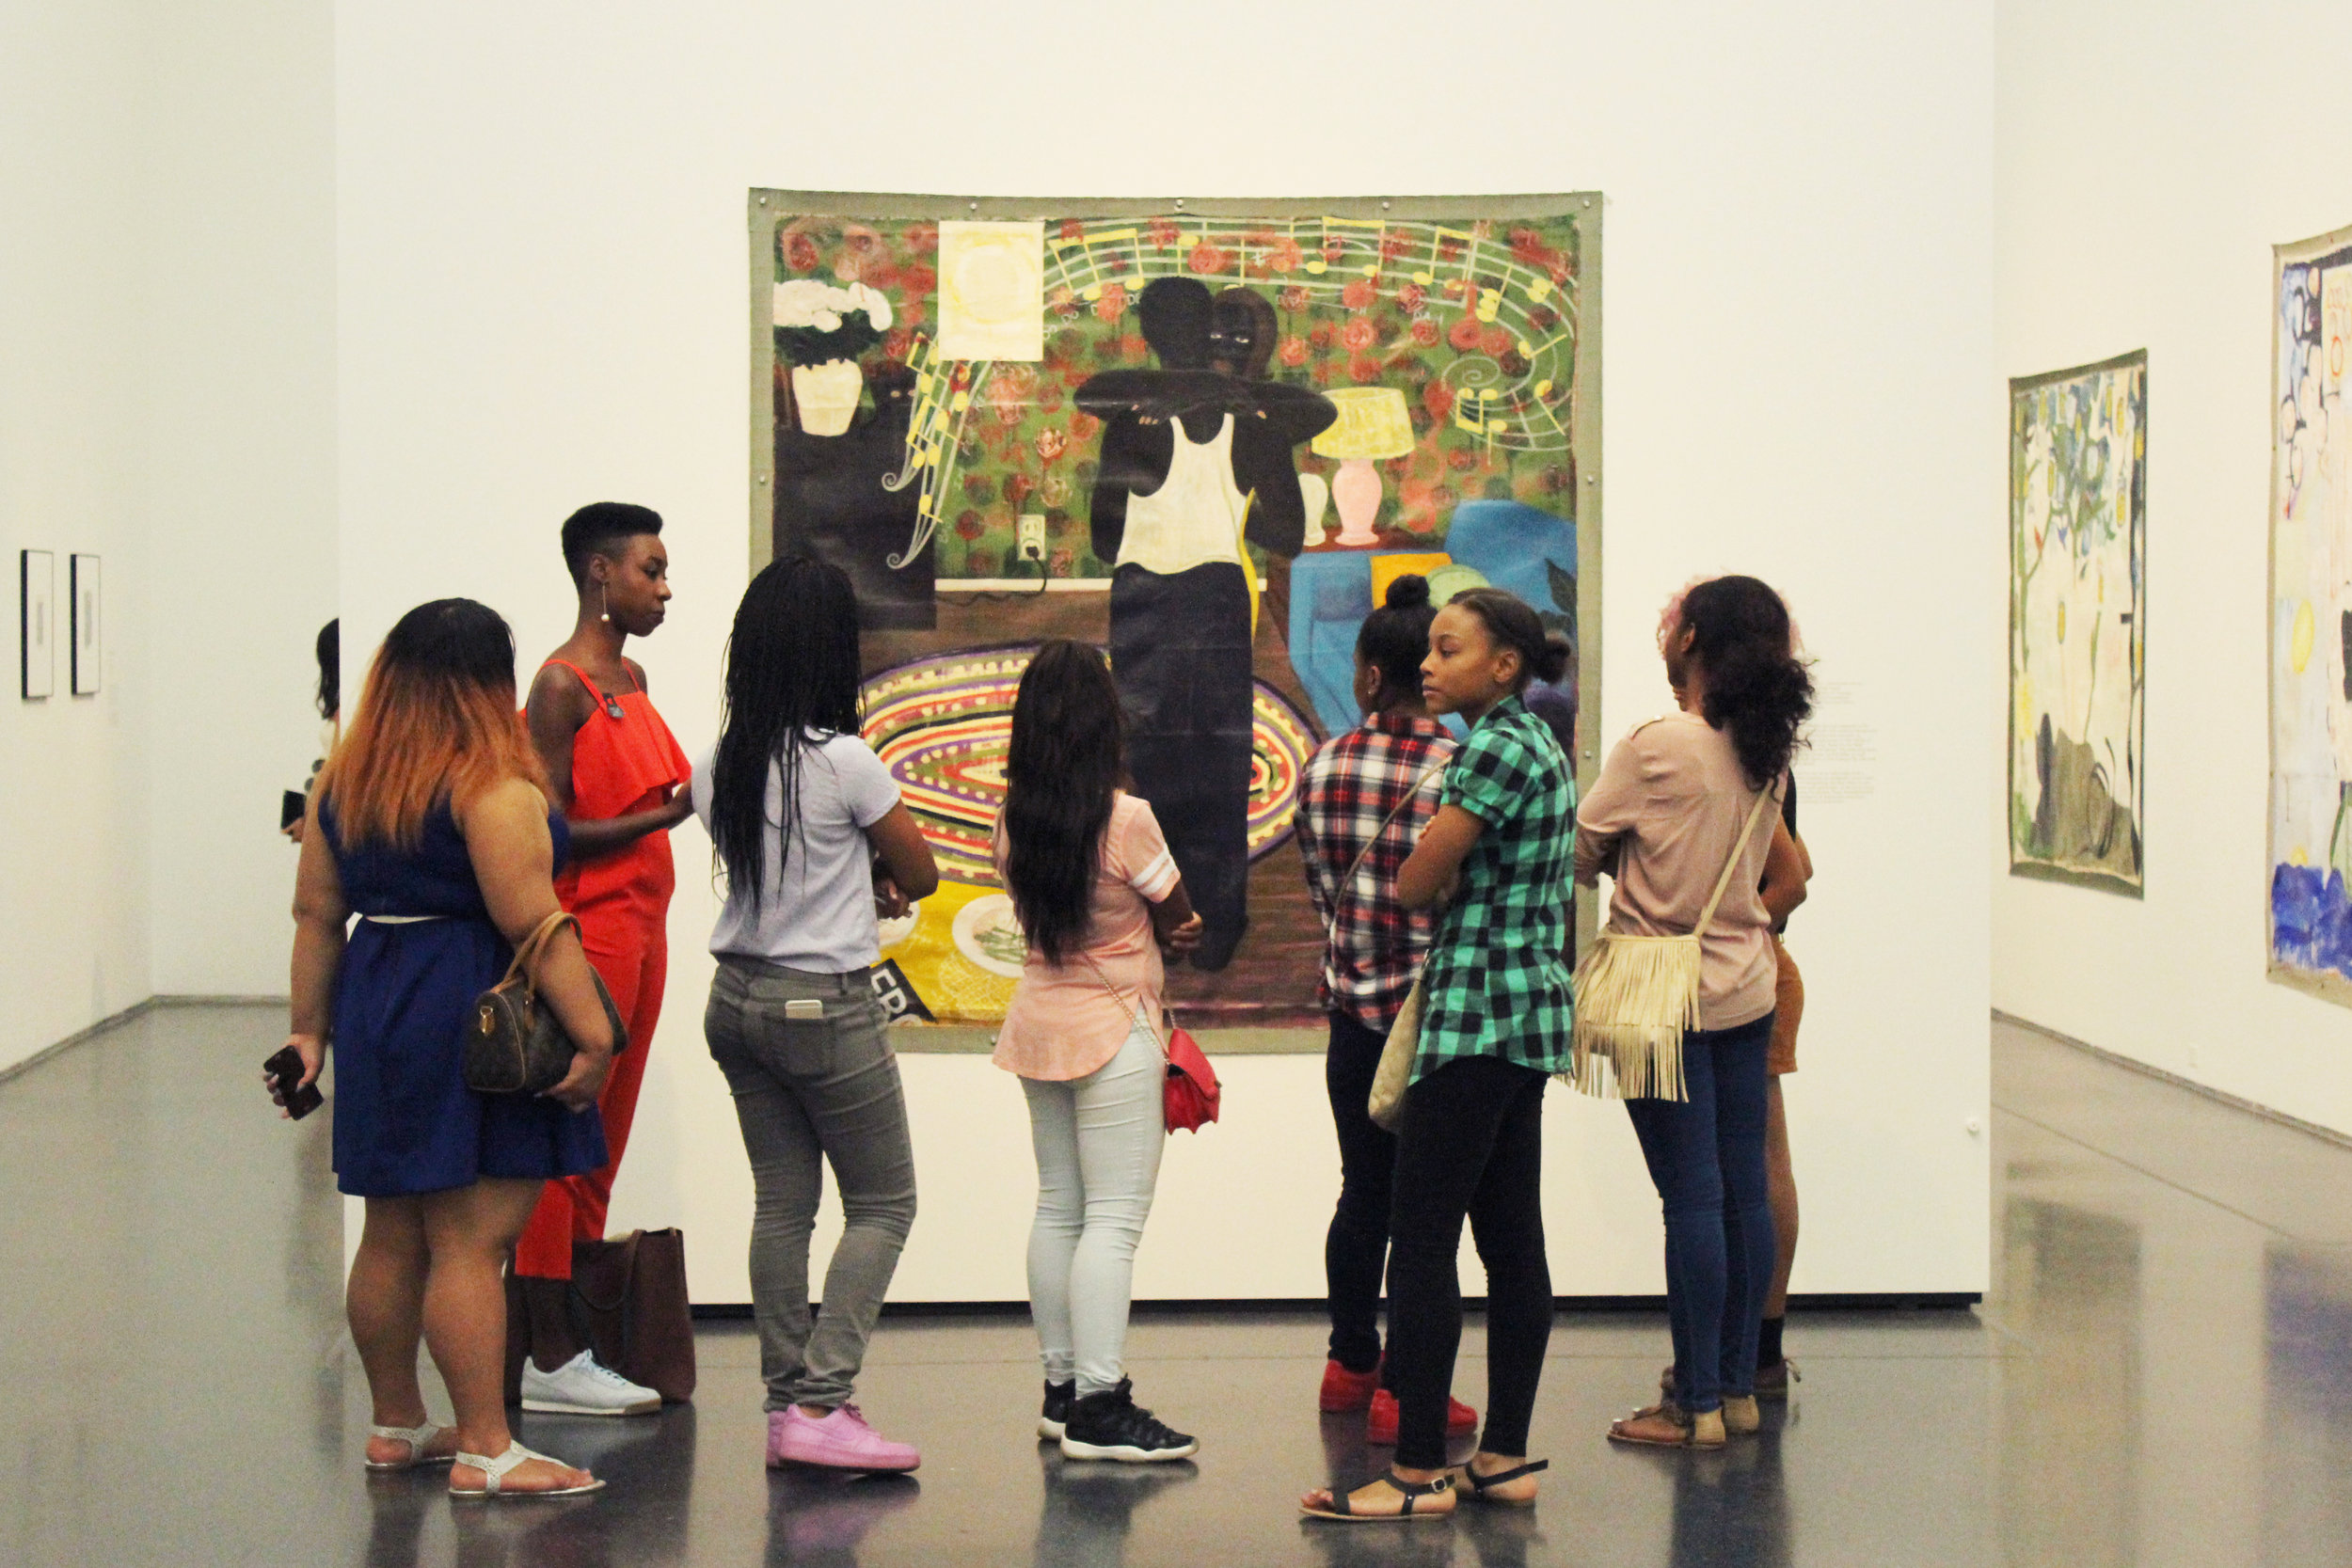 Field Visit to Kerry James Marshall's, 'Mastry' at the Museum of Contemporary Art Chicago